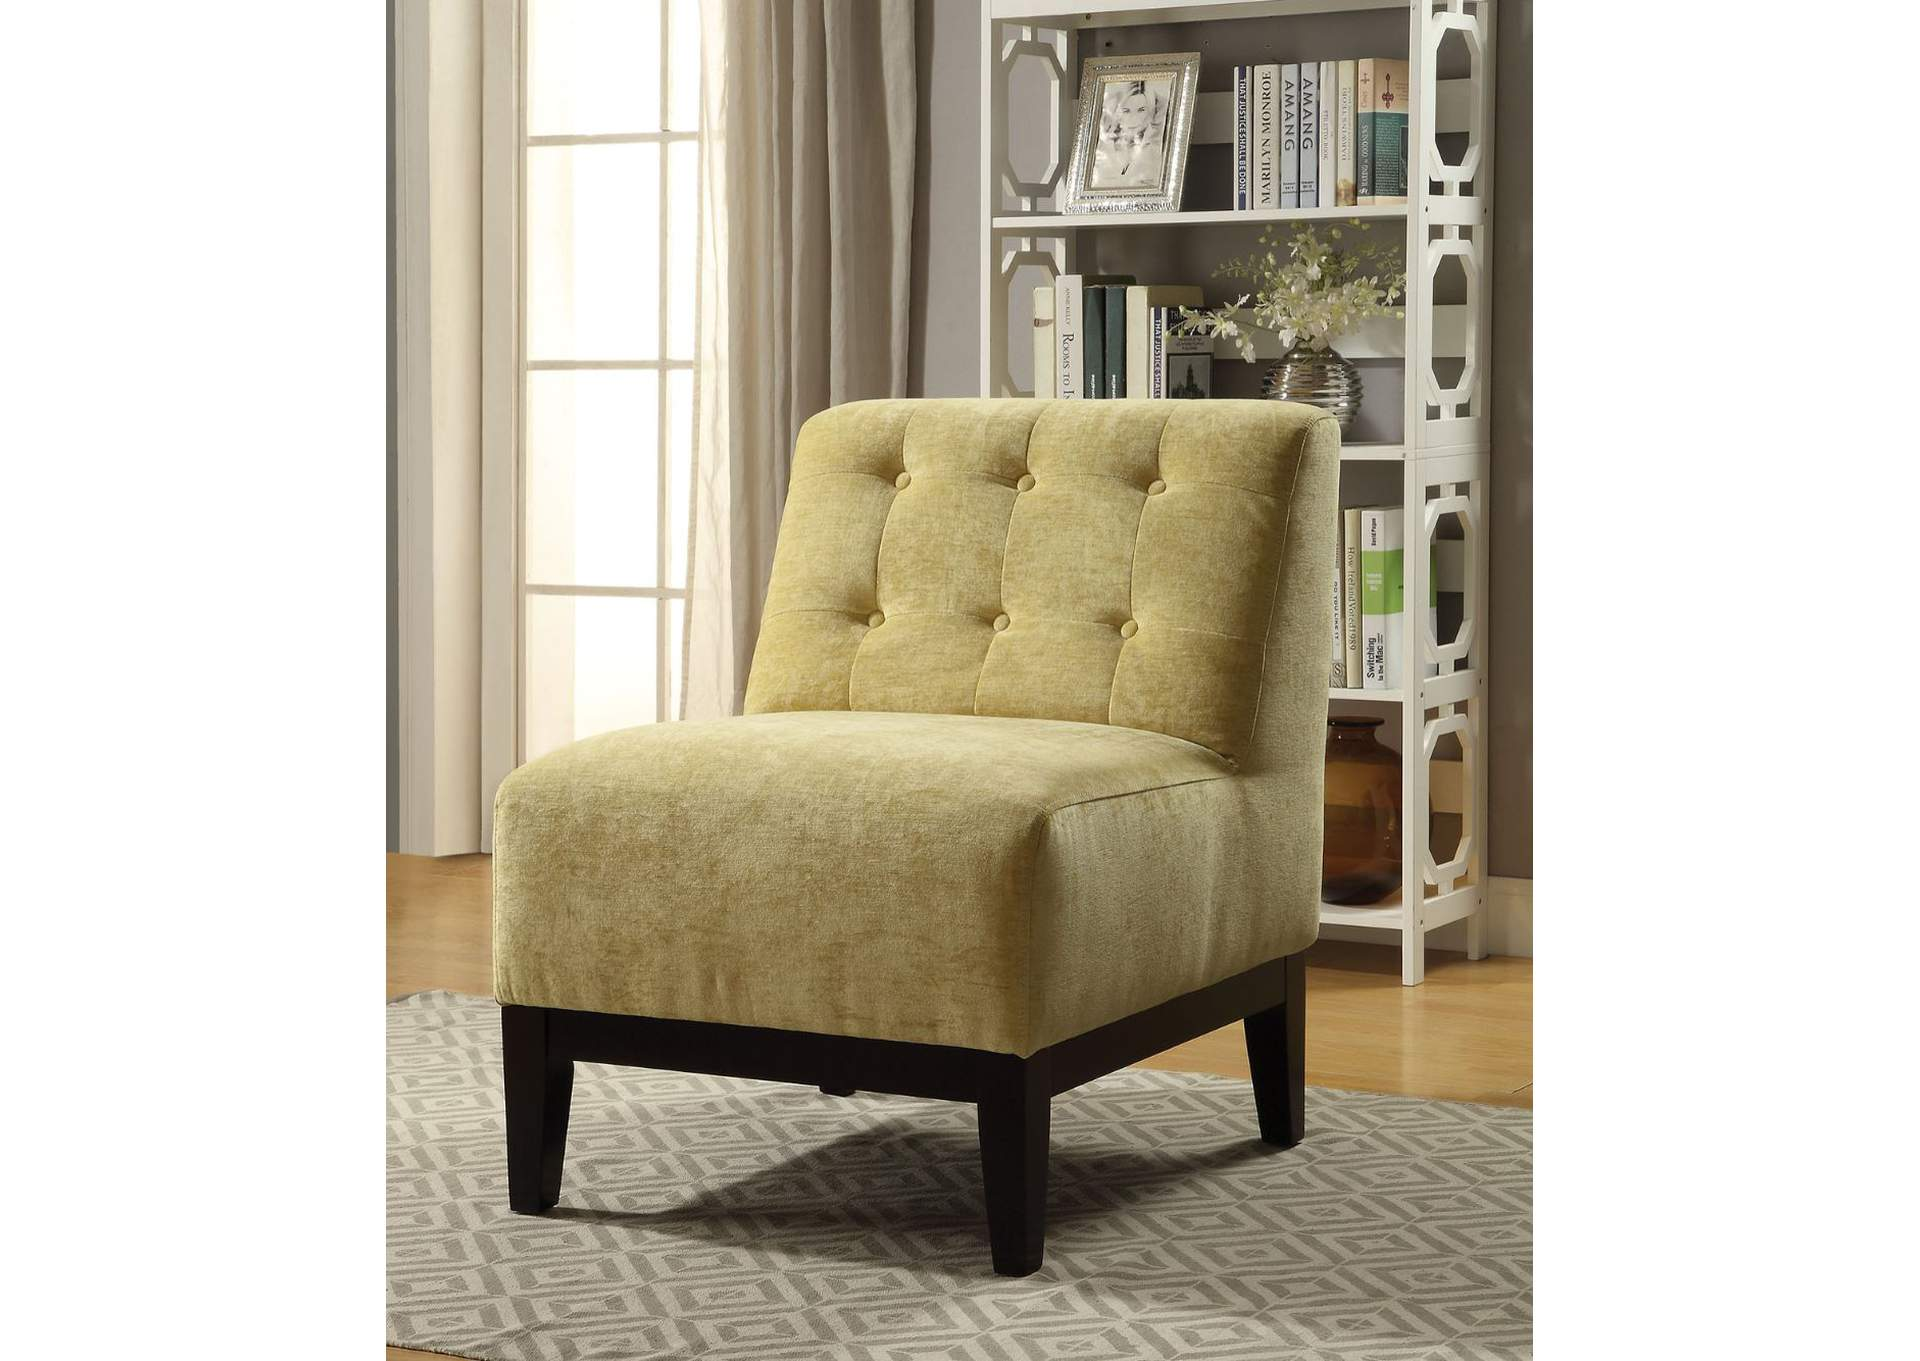 Cassia Yellow Fabric Accent Chair,Acme